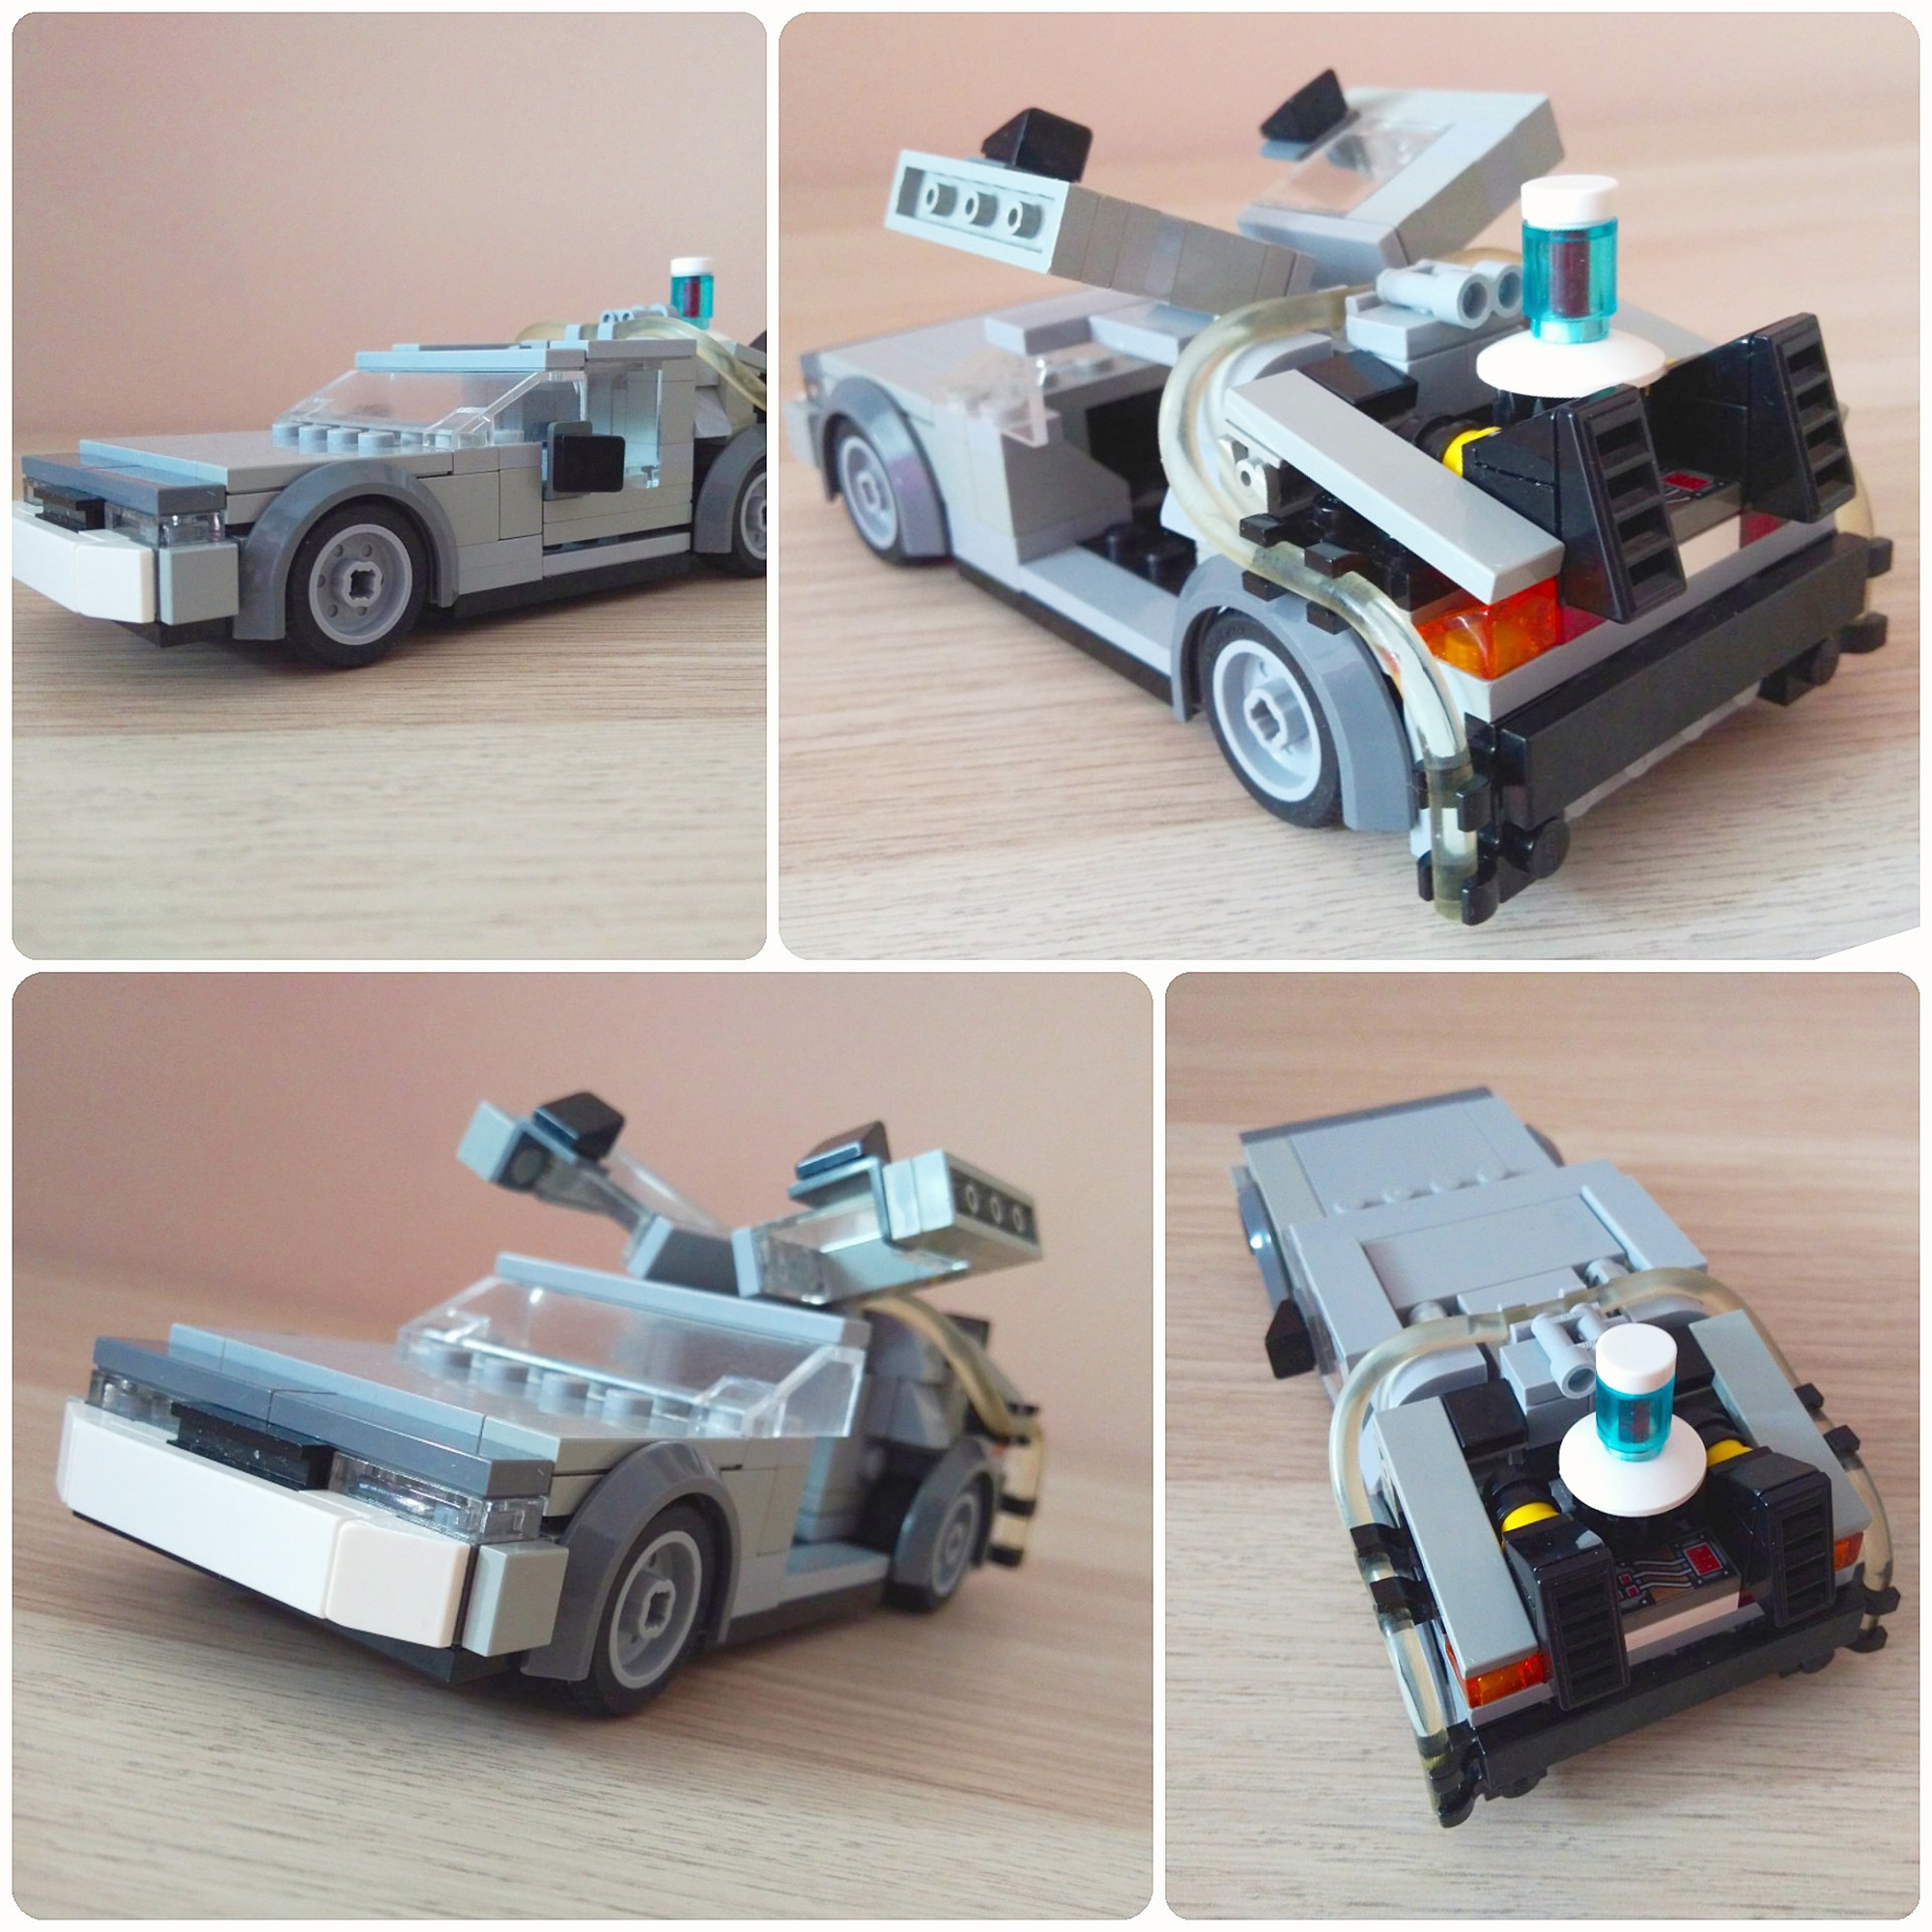 Delorean Time Machine From Bttf Mochub